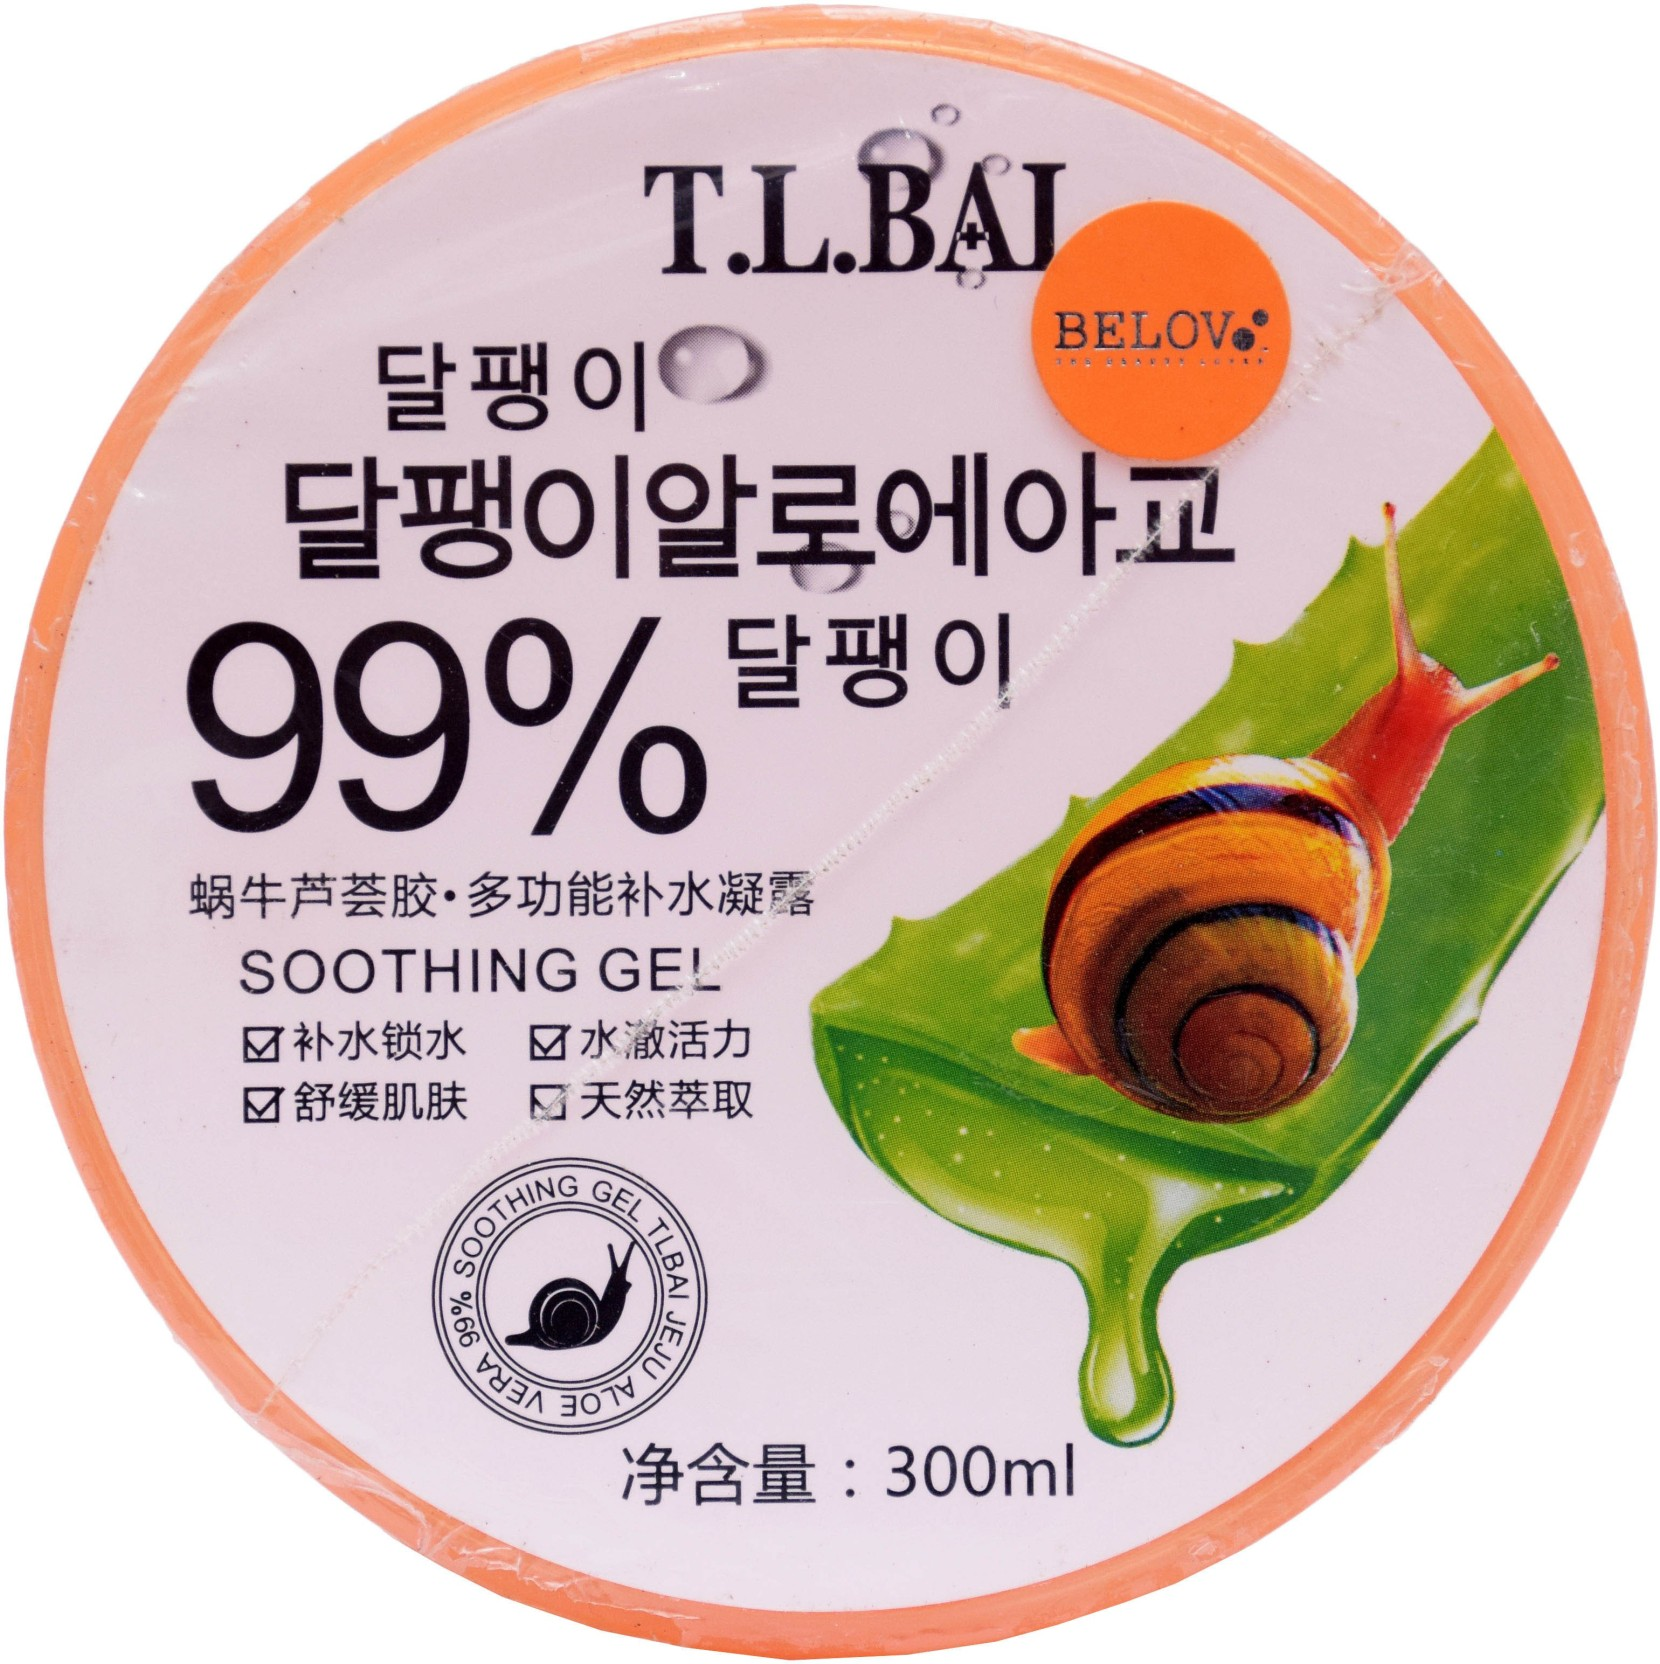 Tl Bai Jeju Aloevera 99 Snail Soothing Gel Price In India Buy The Saem Add To Cart